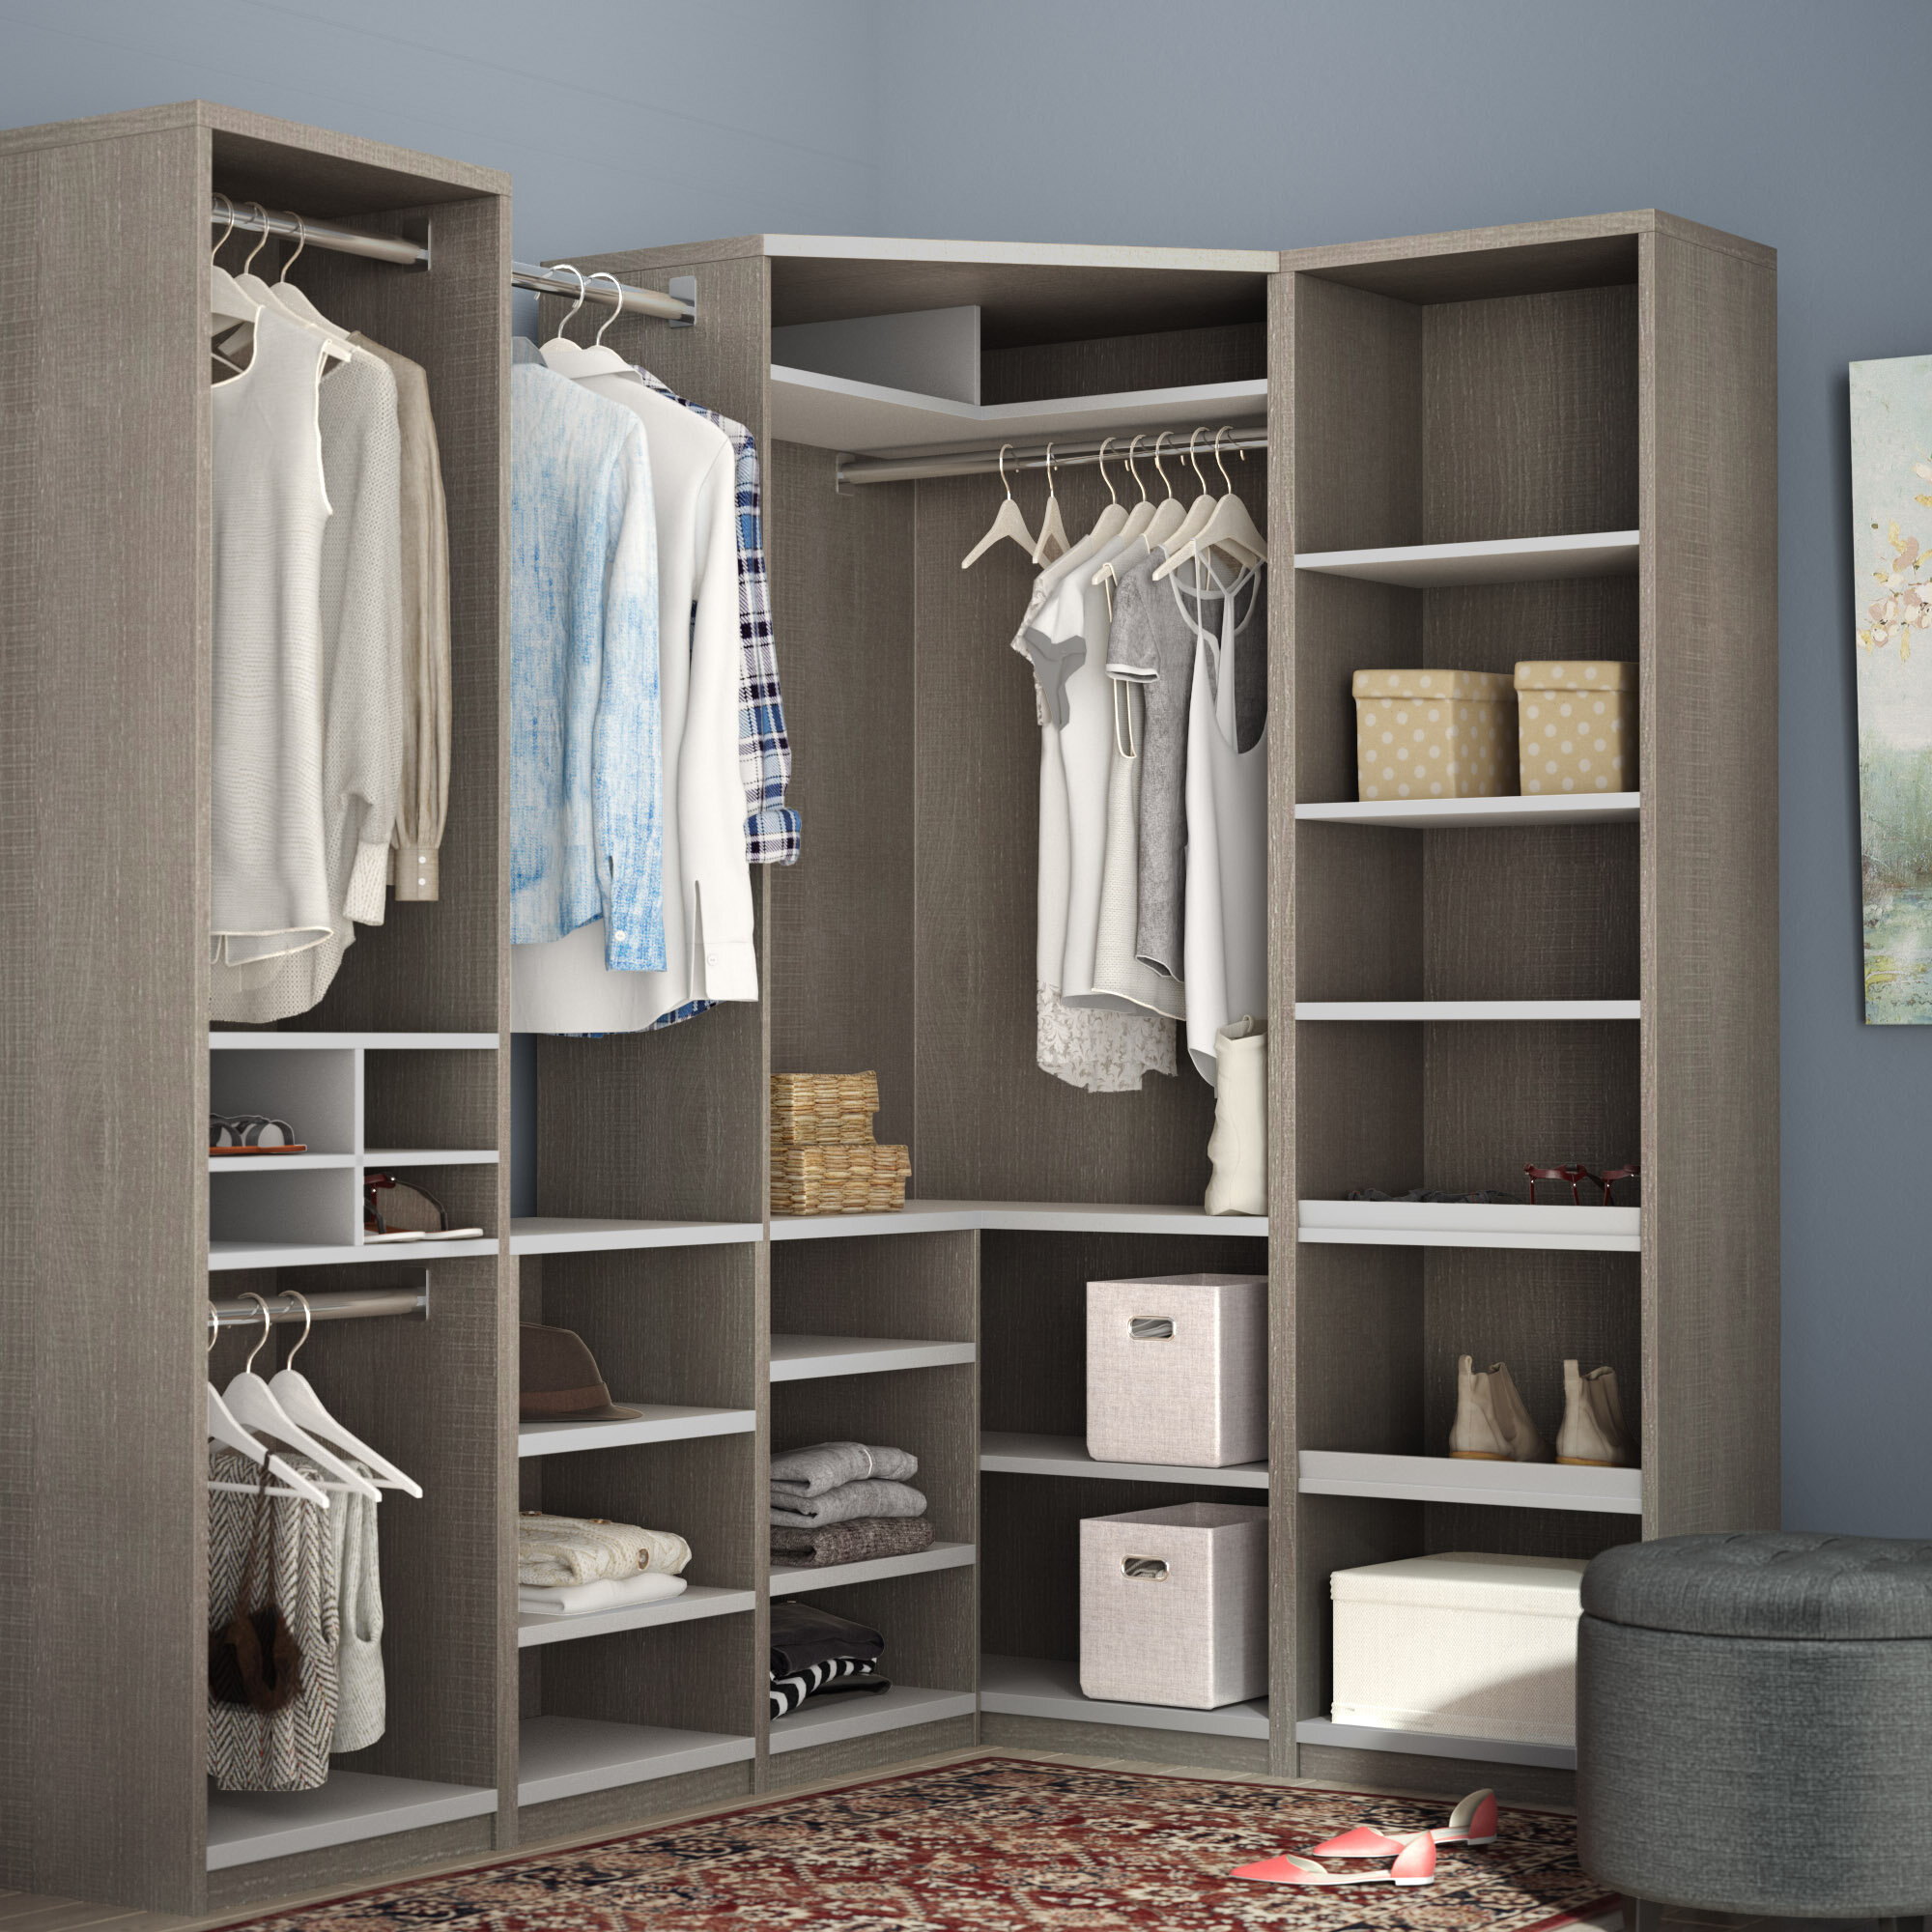 terms closet ie the glass year in ikea fitted brown about read wardrobes corner undredal products brochure spr black wardrobe guarantee en pax